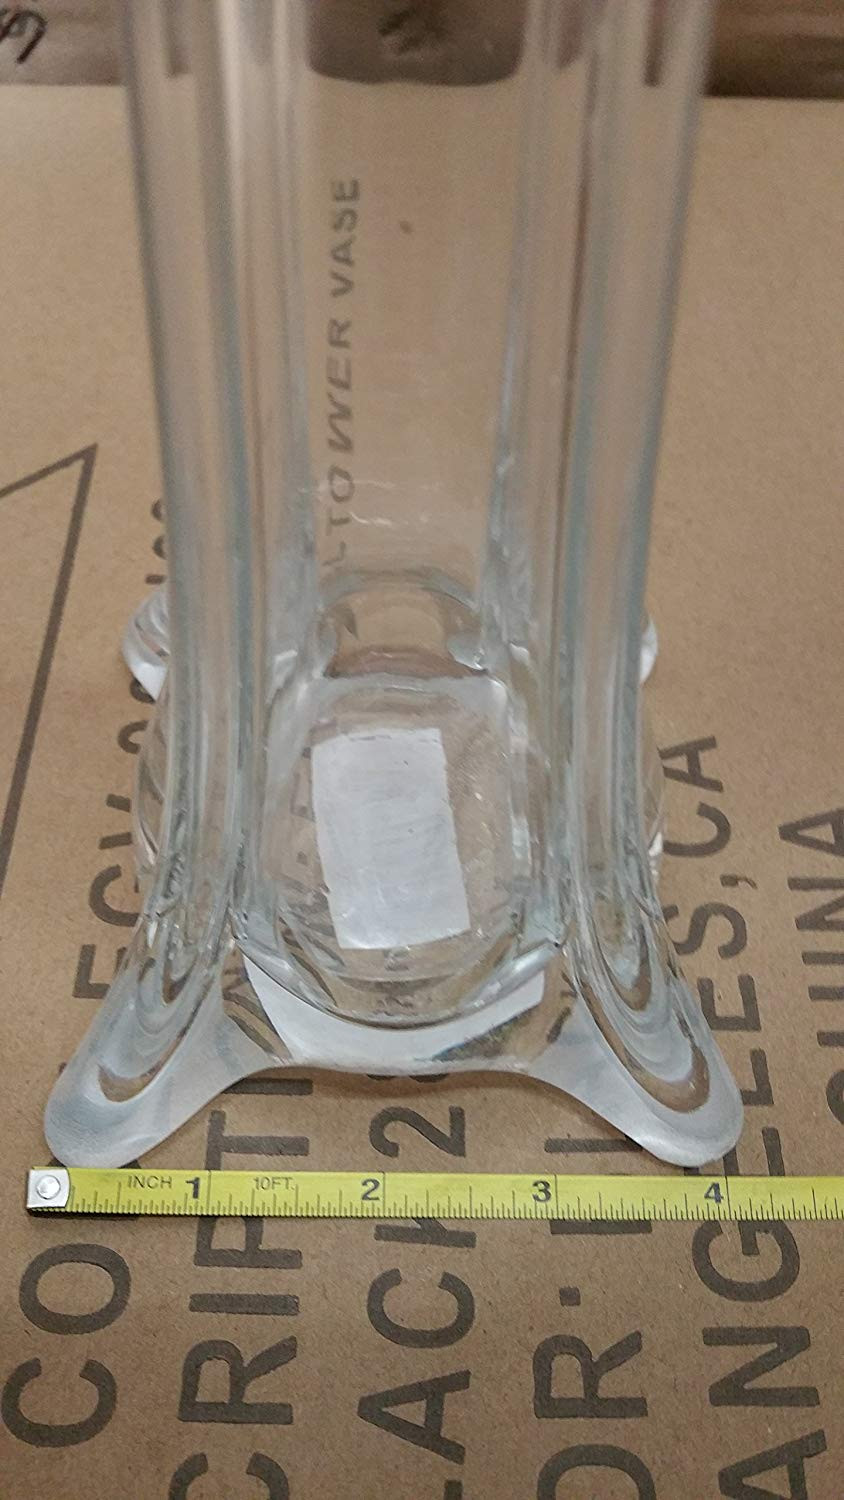 24 inch tall vases bulk of amazon com eiffel tower vase 32 inch case of 12 by la crafts intended for amazon com eiffel tower vase 32 inch case of 12 by la crafts clear arts crafts sewing